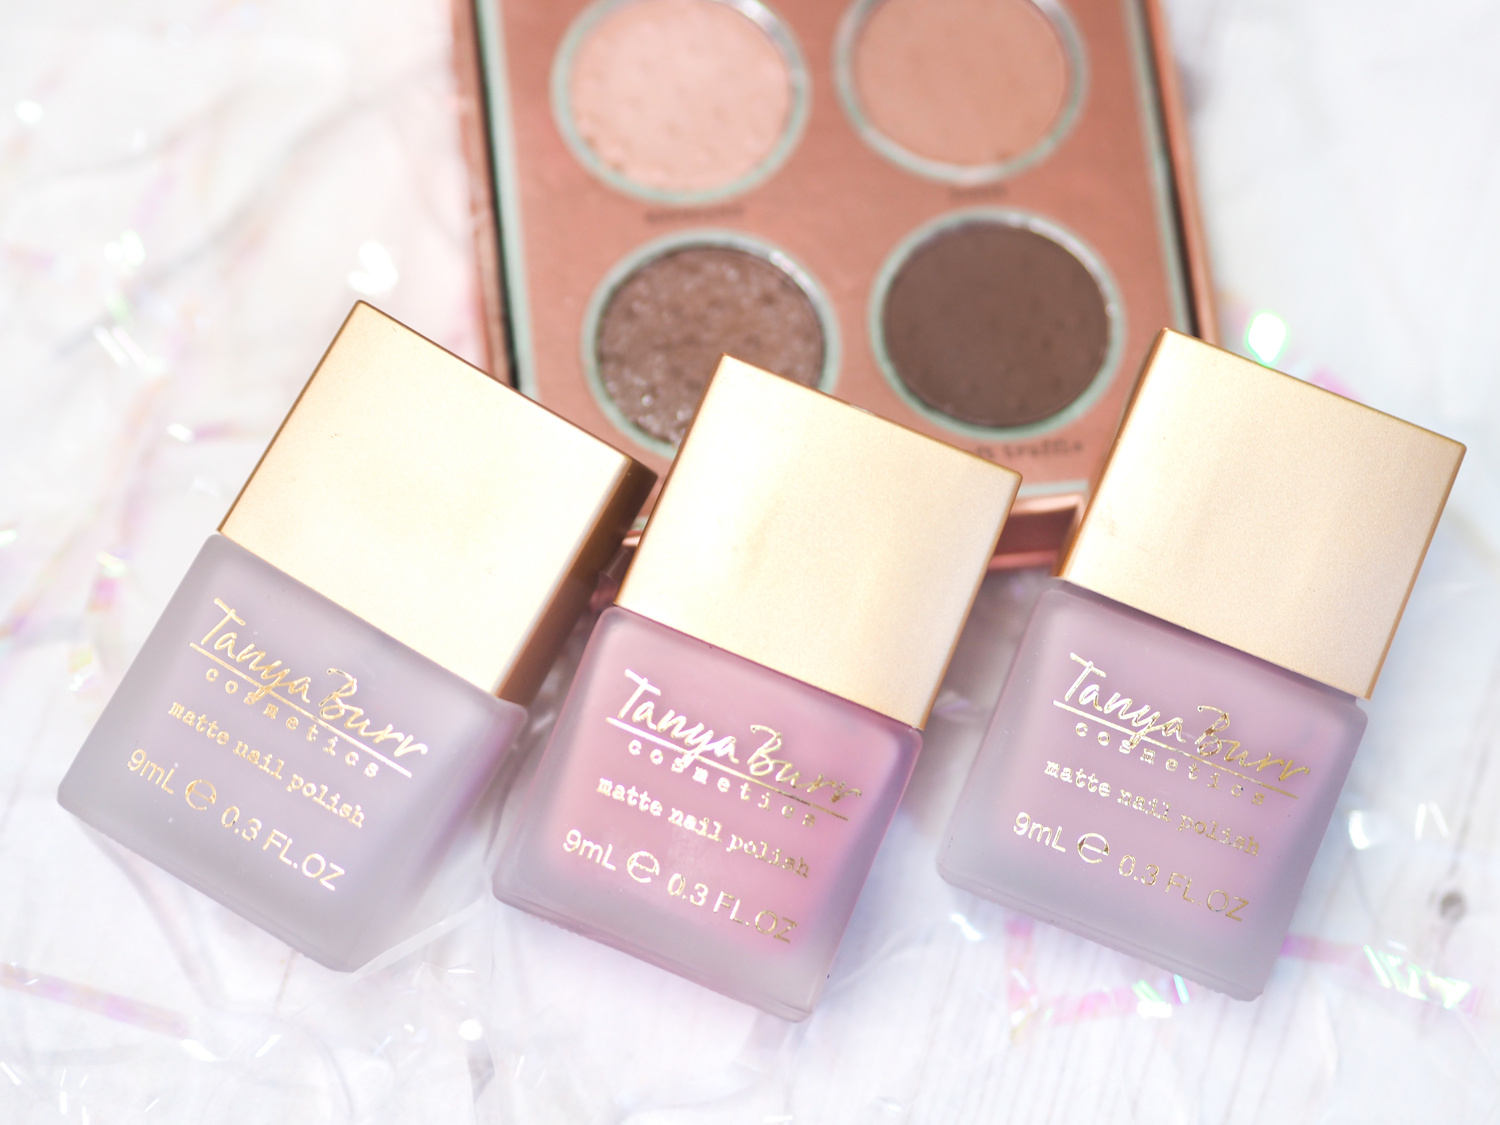 Tanya Burr Cosmetics Soft Luxe Collection